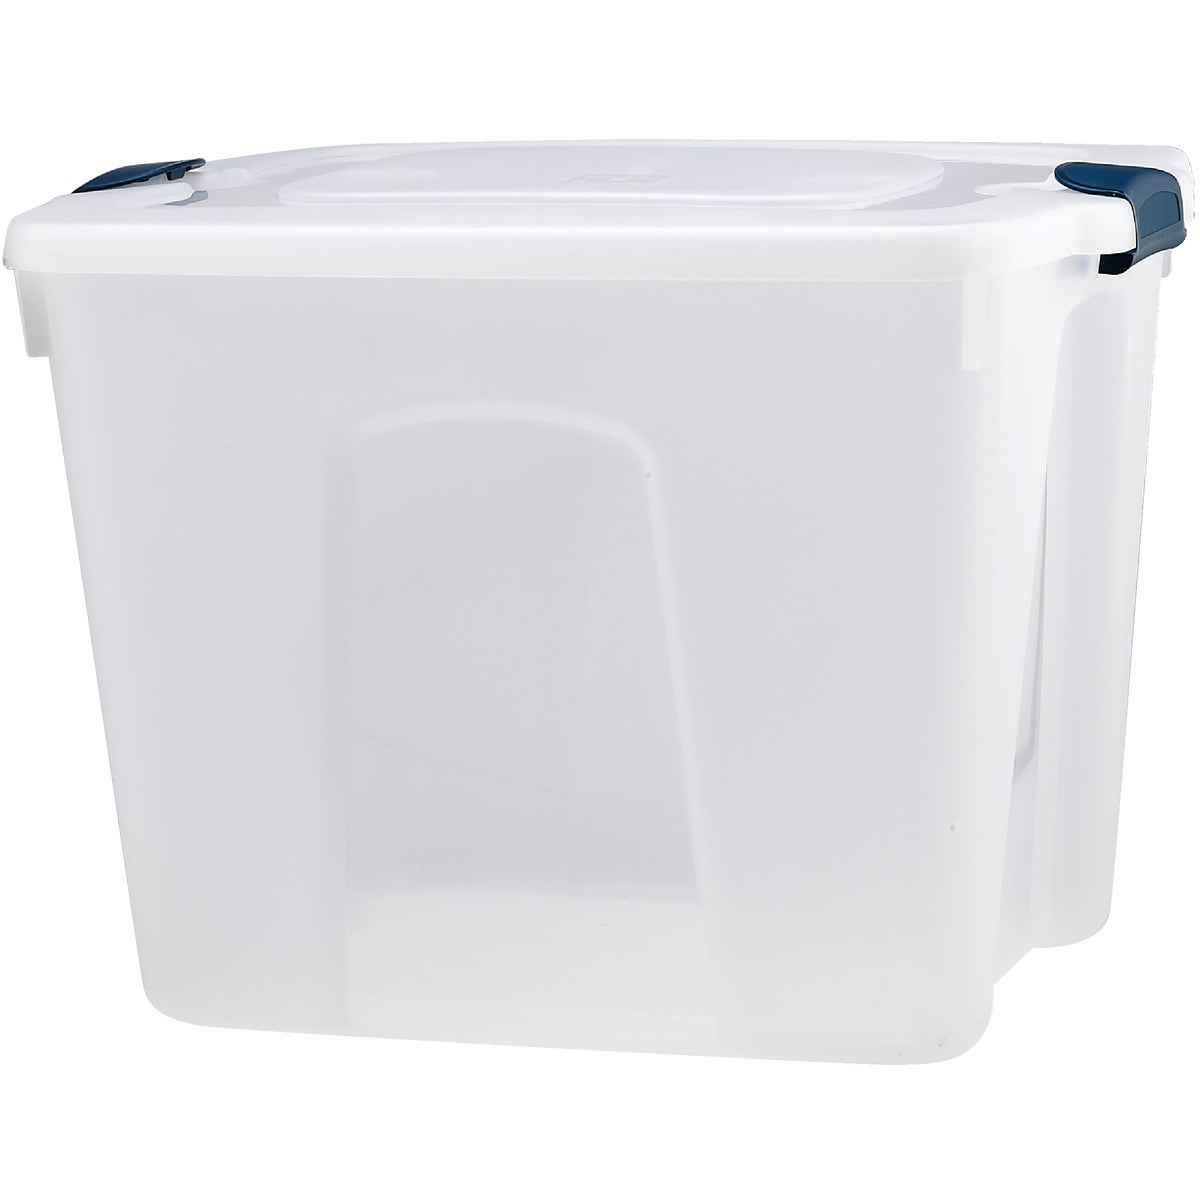 20GAL STORAGE TOTE - 8520CL.08 by Homz/ Tamor